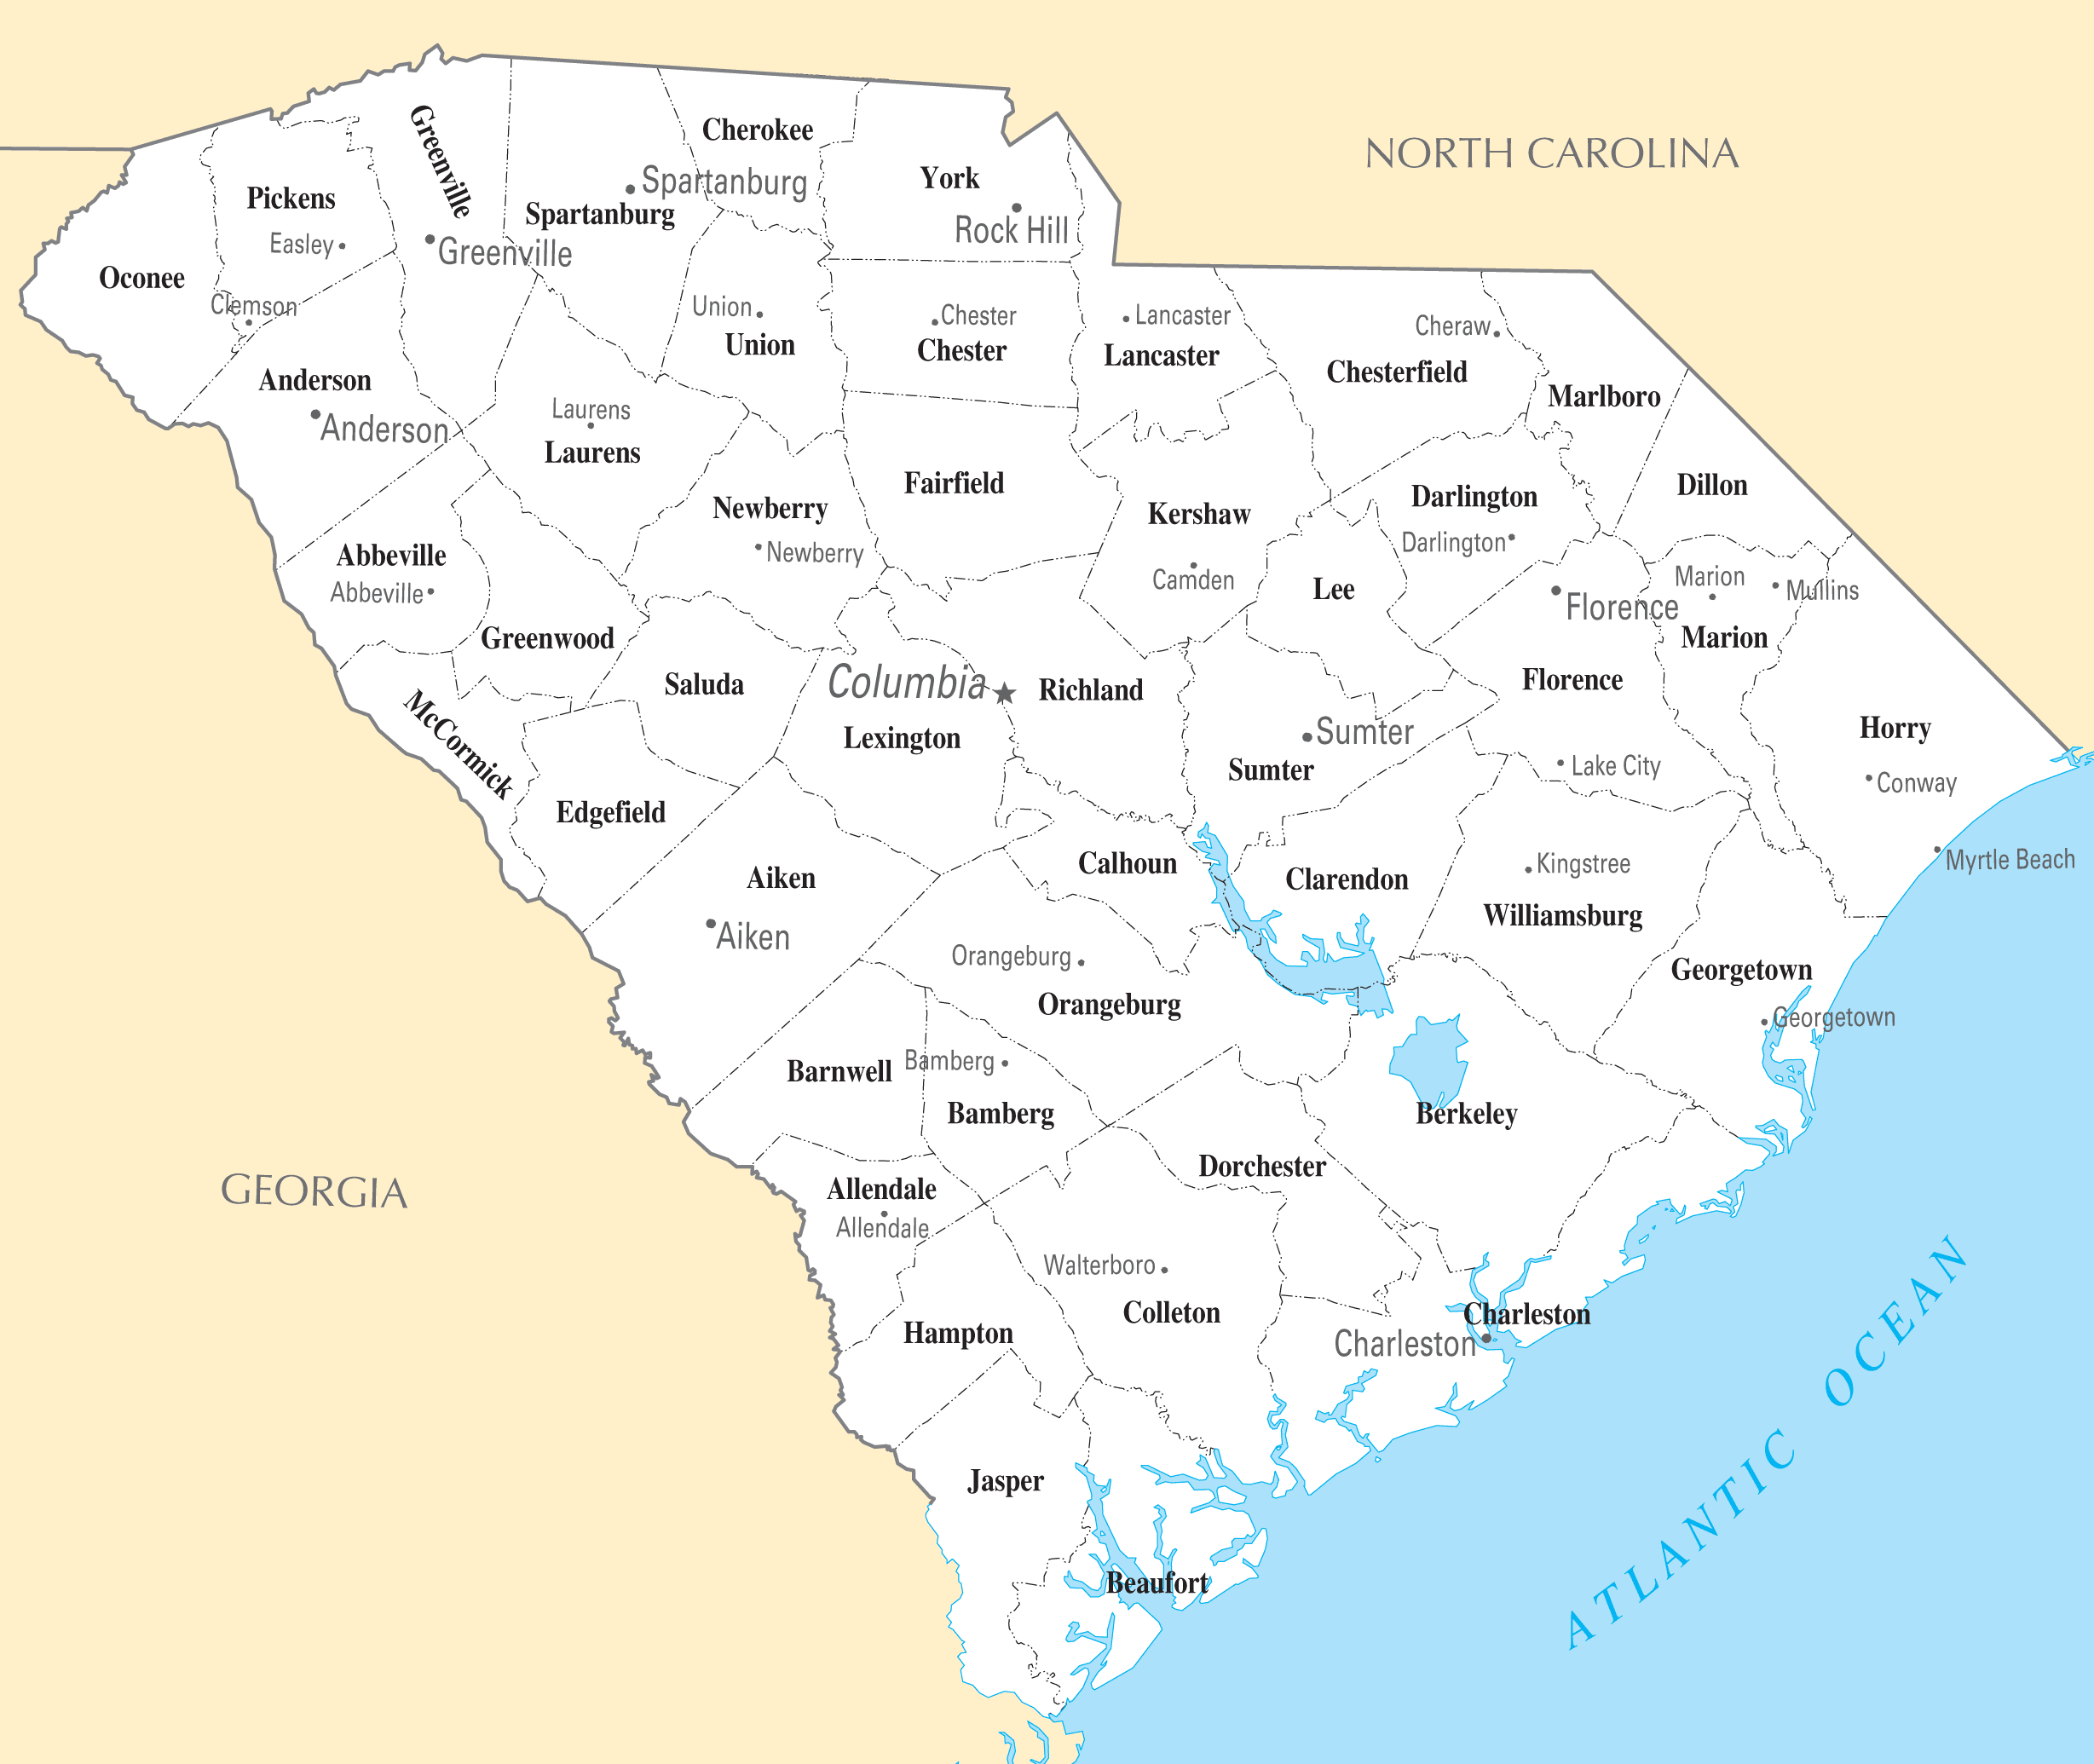 South Carolina Cities And Towns  Mapsof